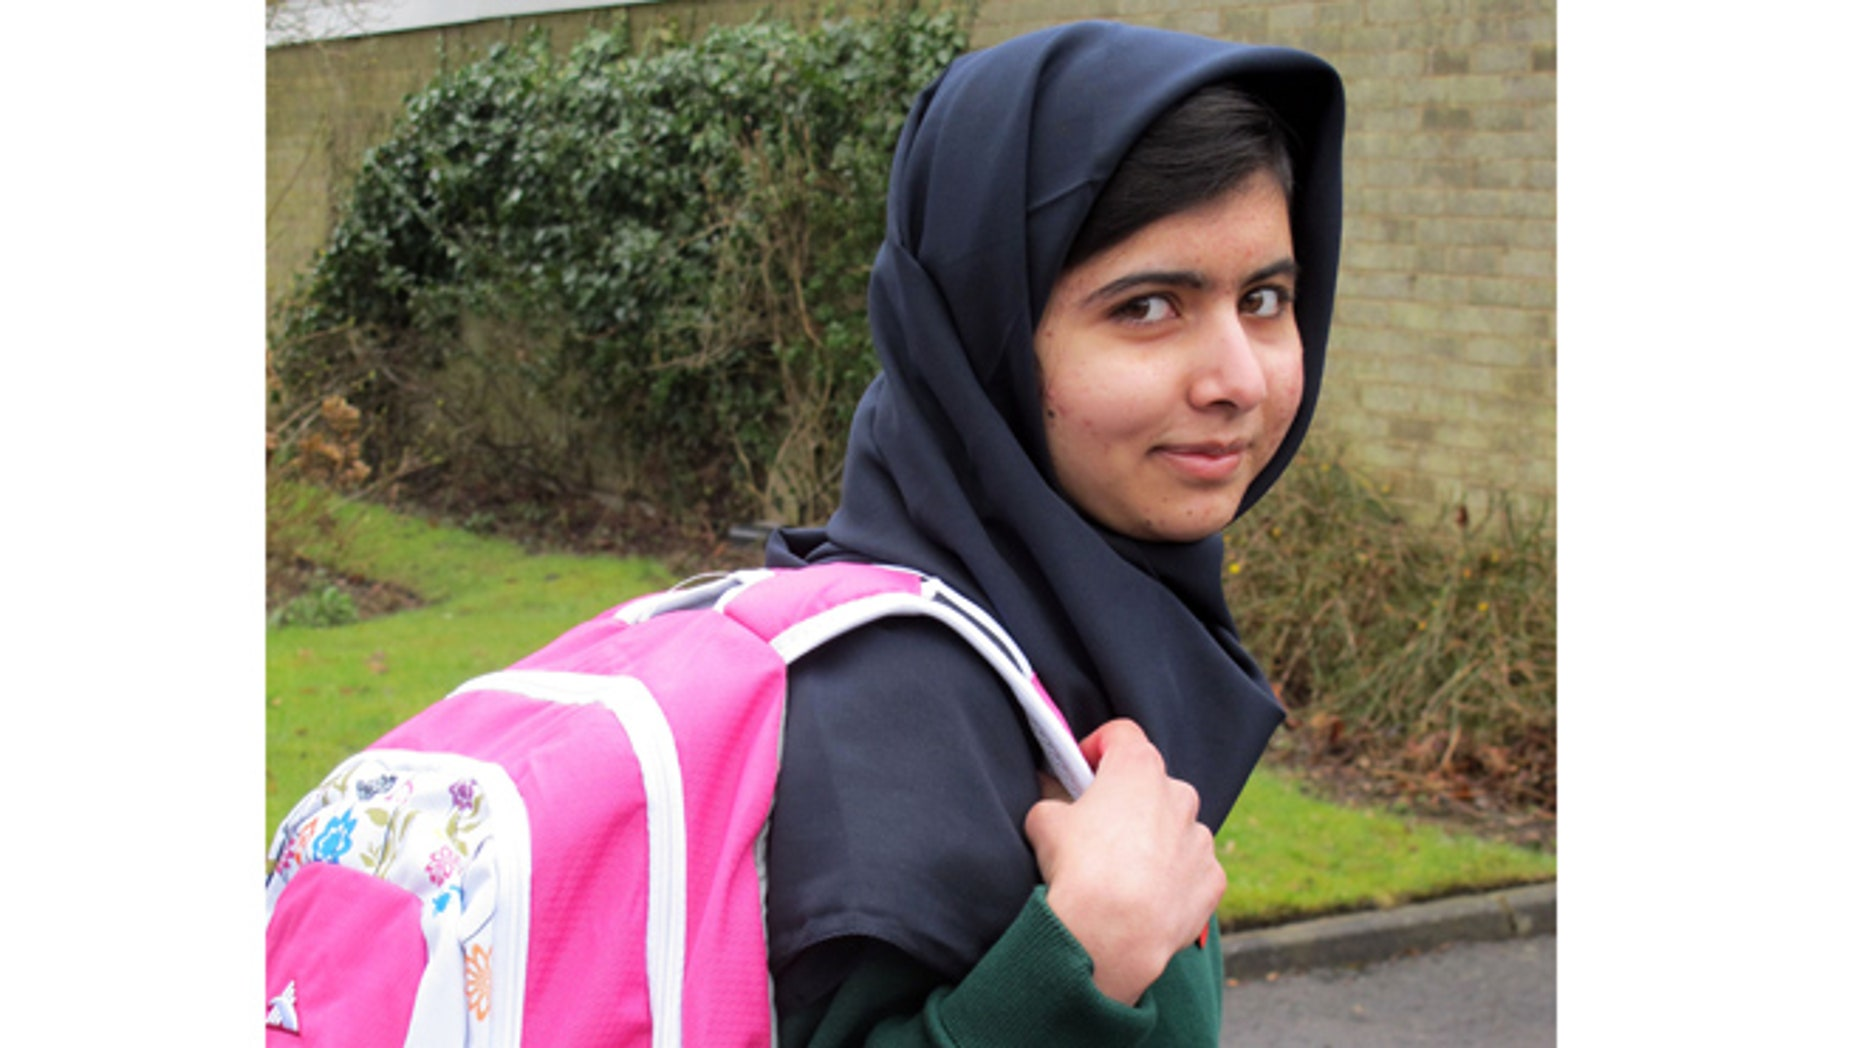 Image made available by her press office of Malala Yousafzai, the Pakistani schoolgirl shot in the head by the Taliban, as she attends her first day of school on Tuesday March 19, 2013 just weeks after being released from hospital.